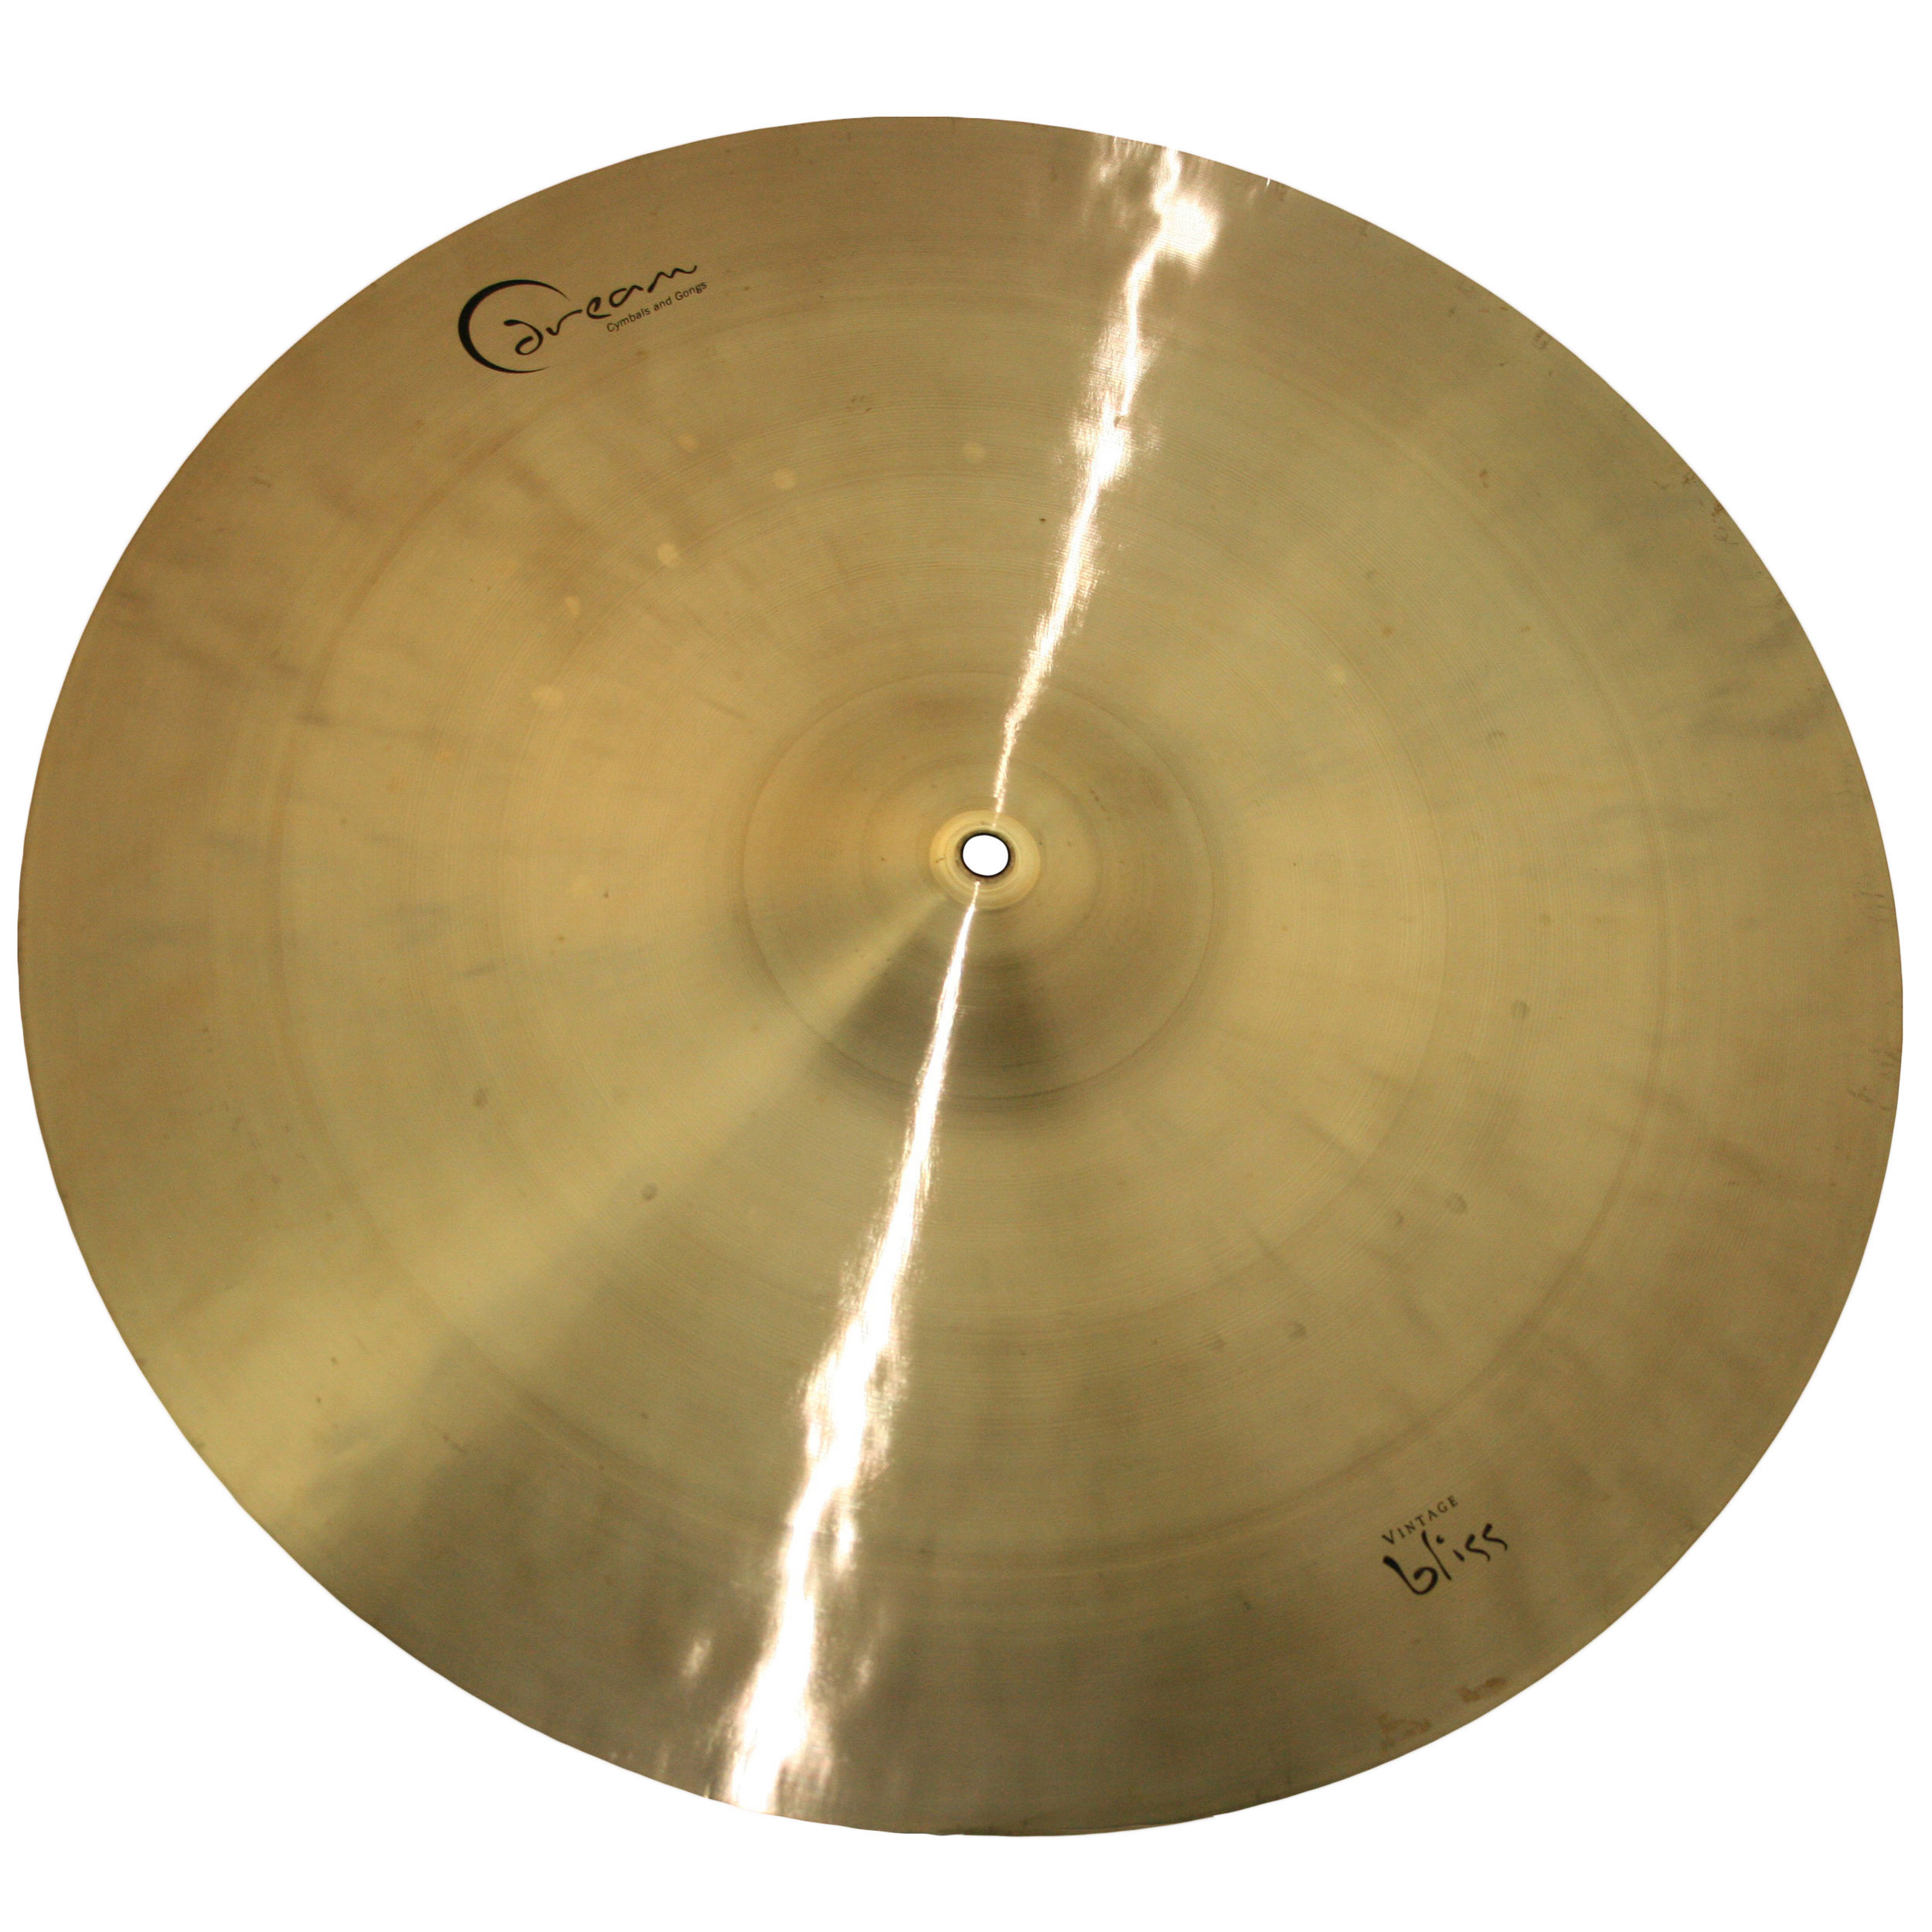 "Dream 20"" Vintage Bliss Crash/Ride Cymbal"